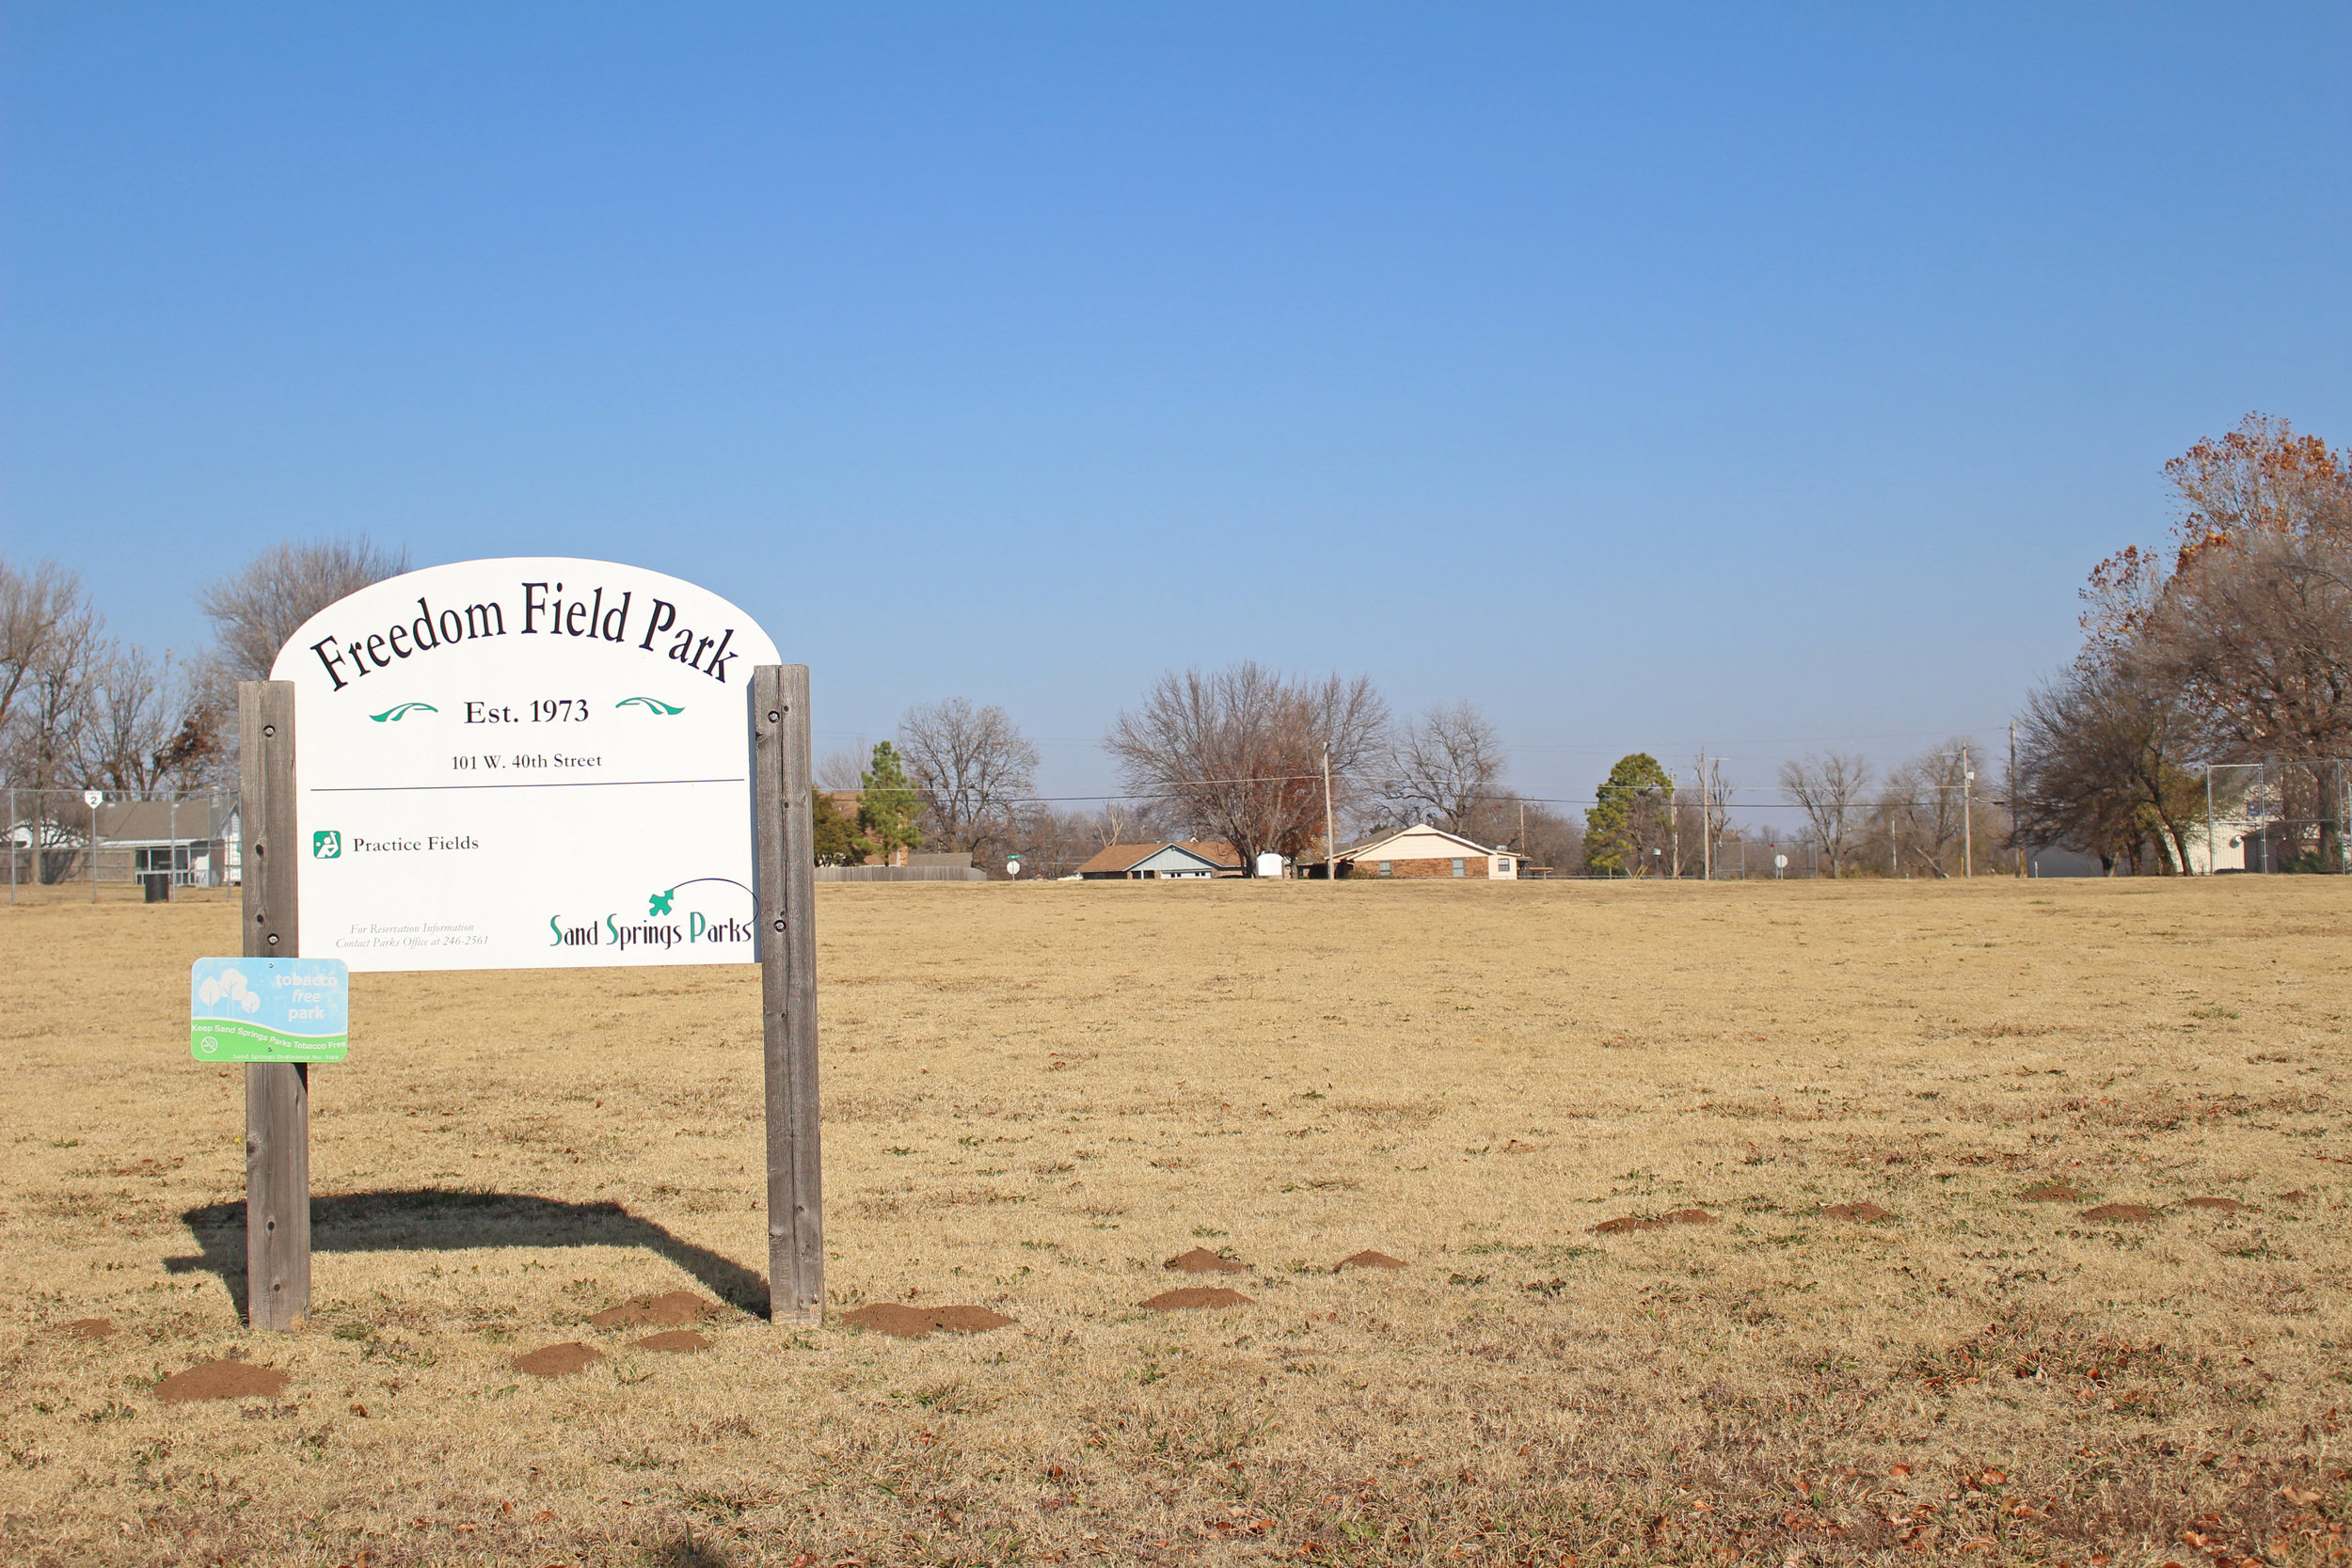 freedom field park - prattville 101 west 40th street